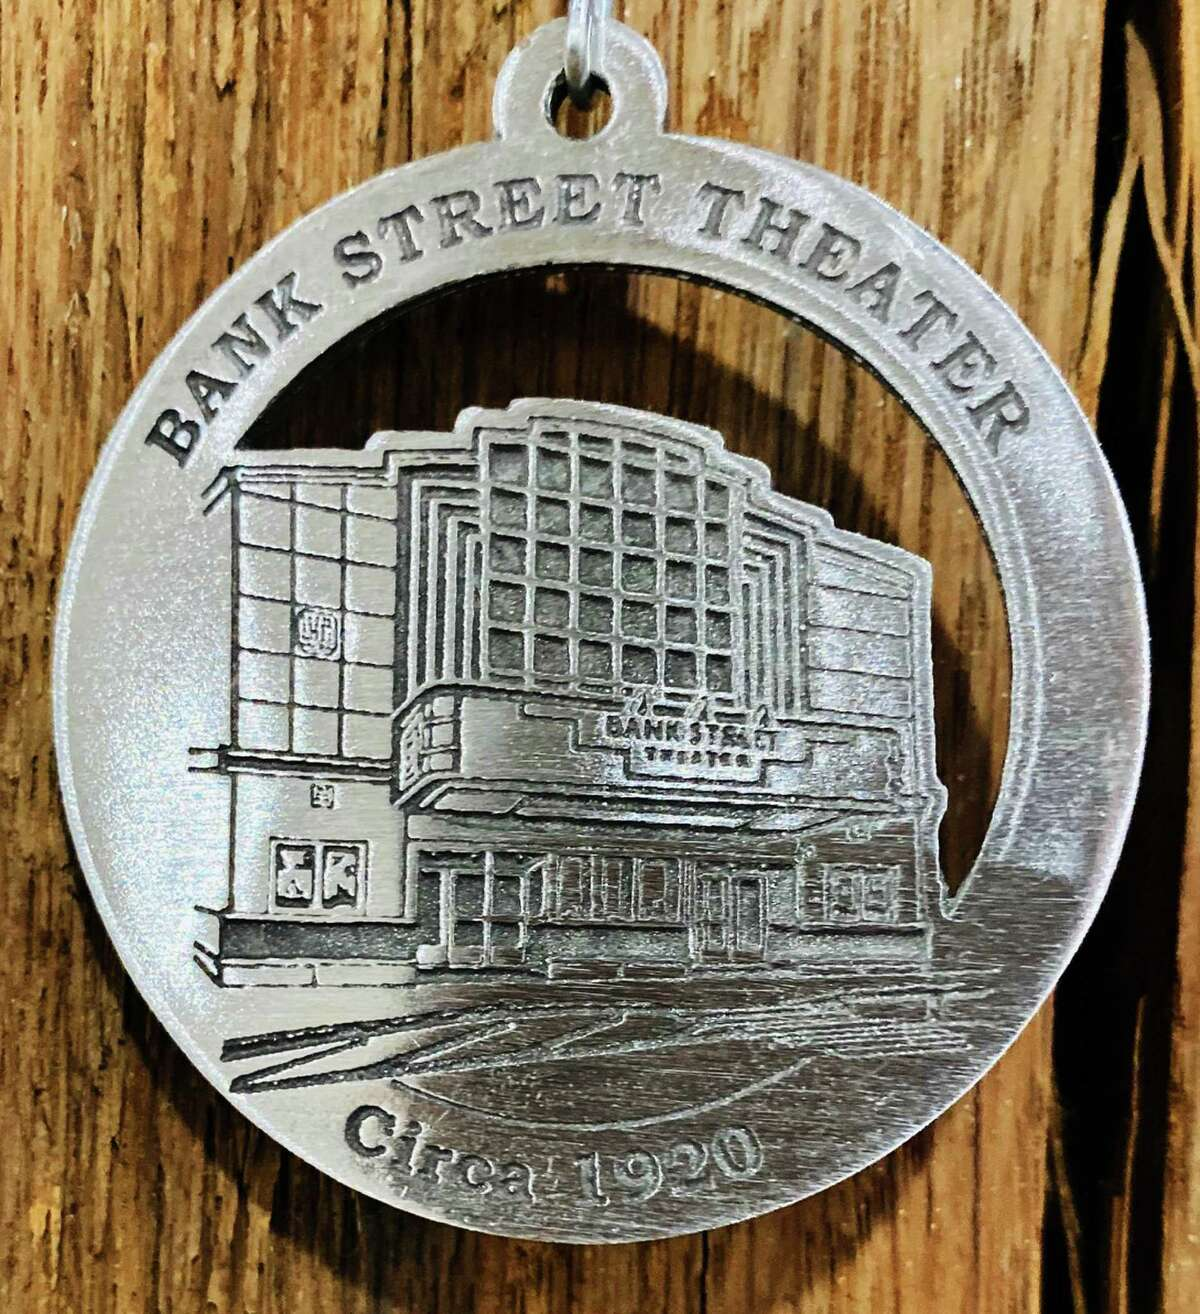 The New Milford Historical Society & Museum's 2019 commemorative medallionfeatures an image of the iconic Bank Street Theater